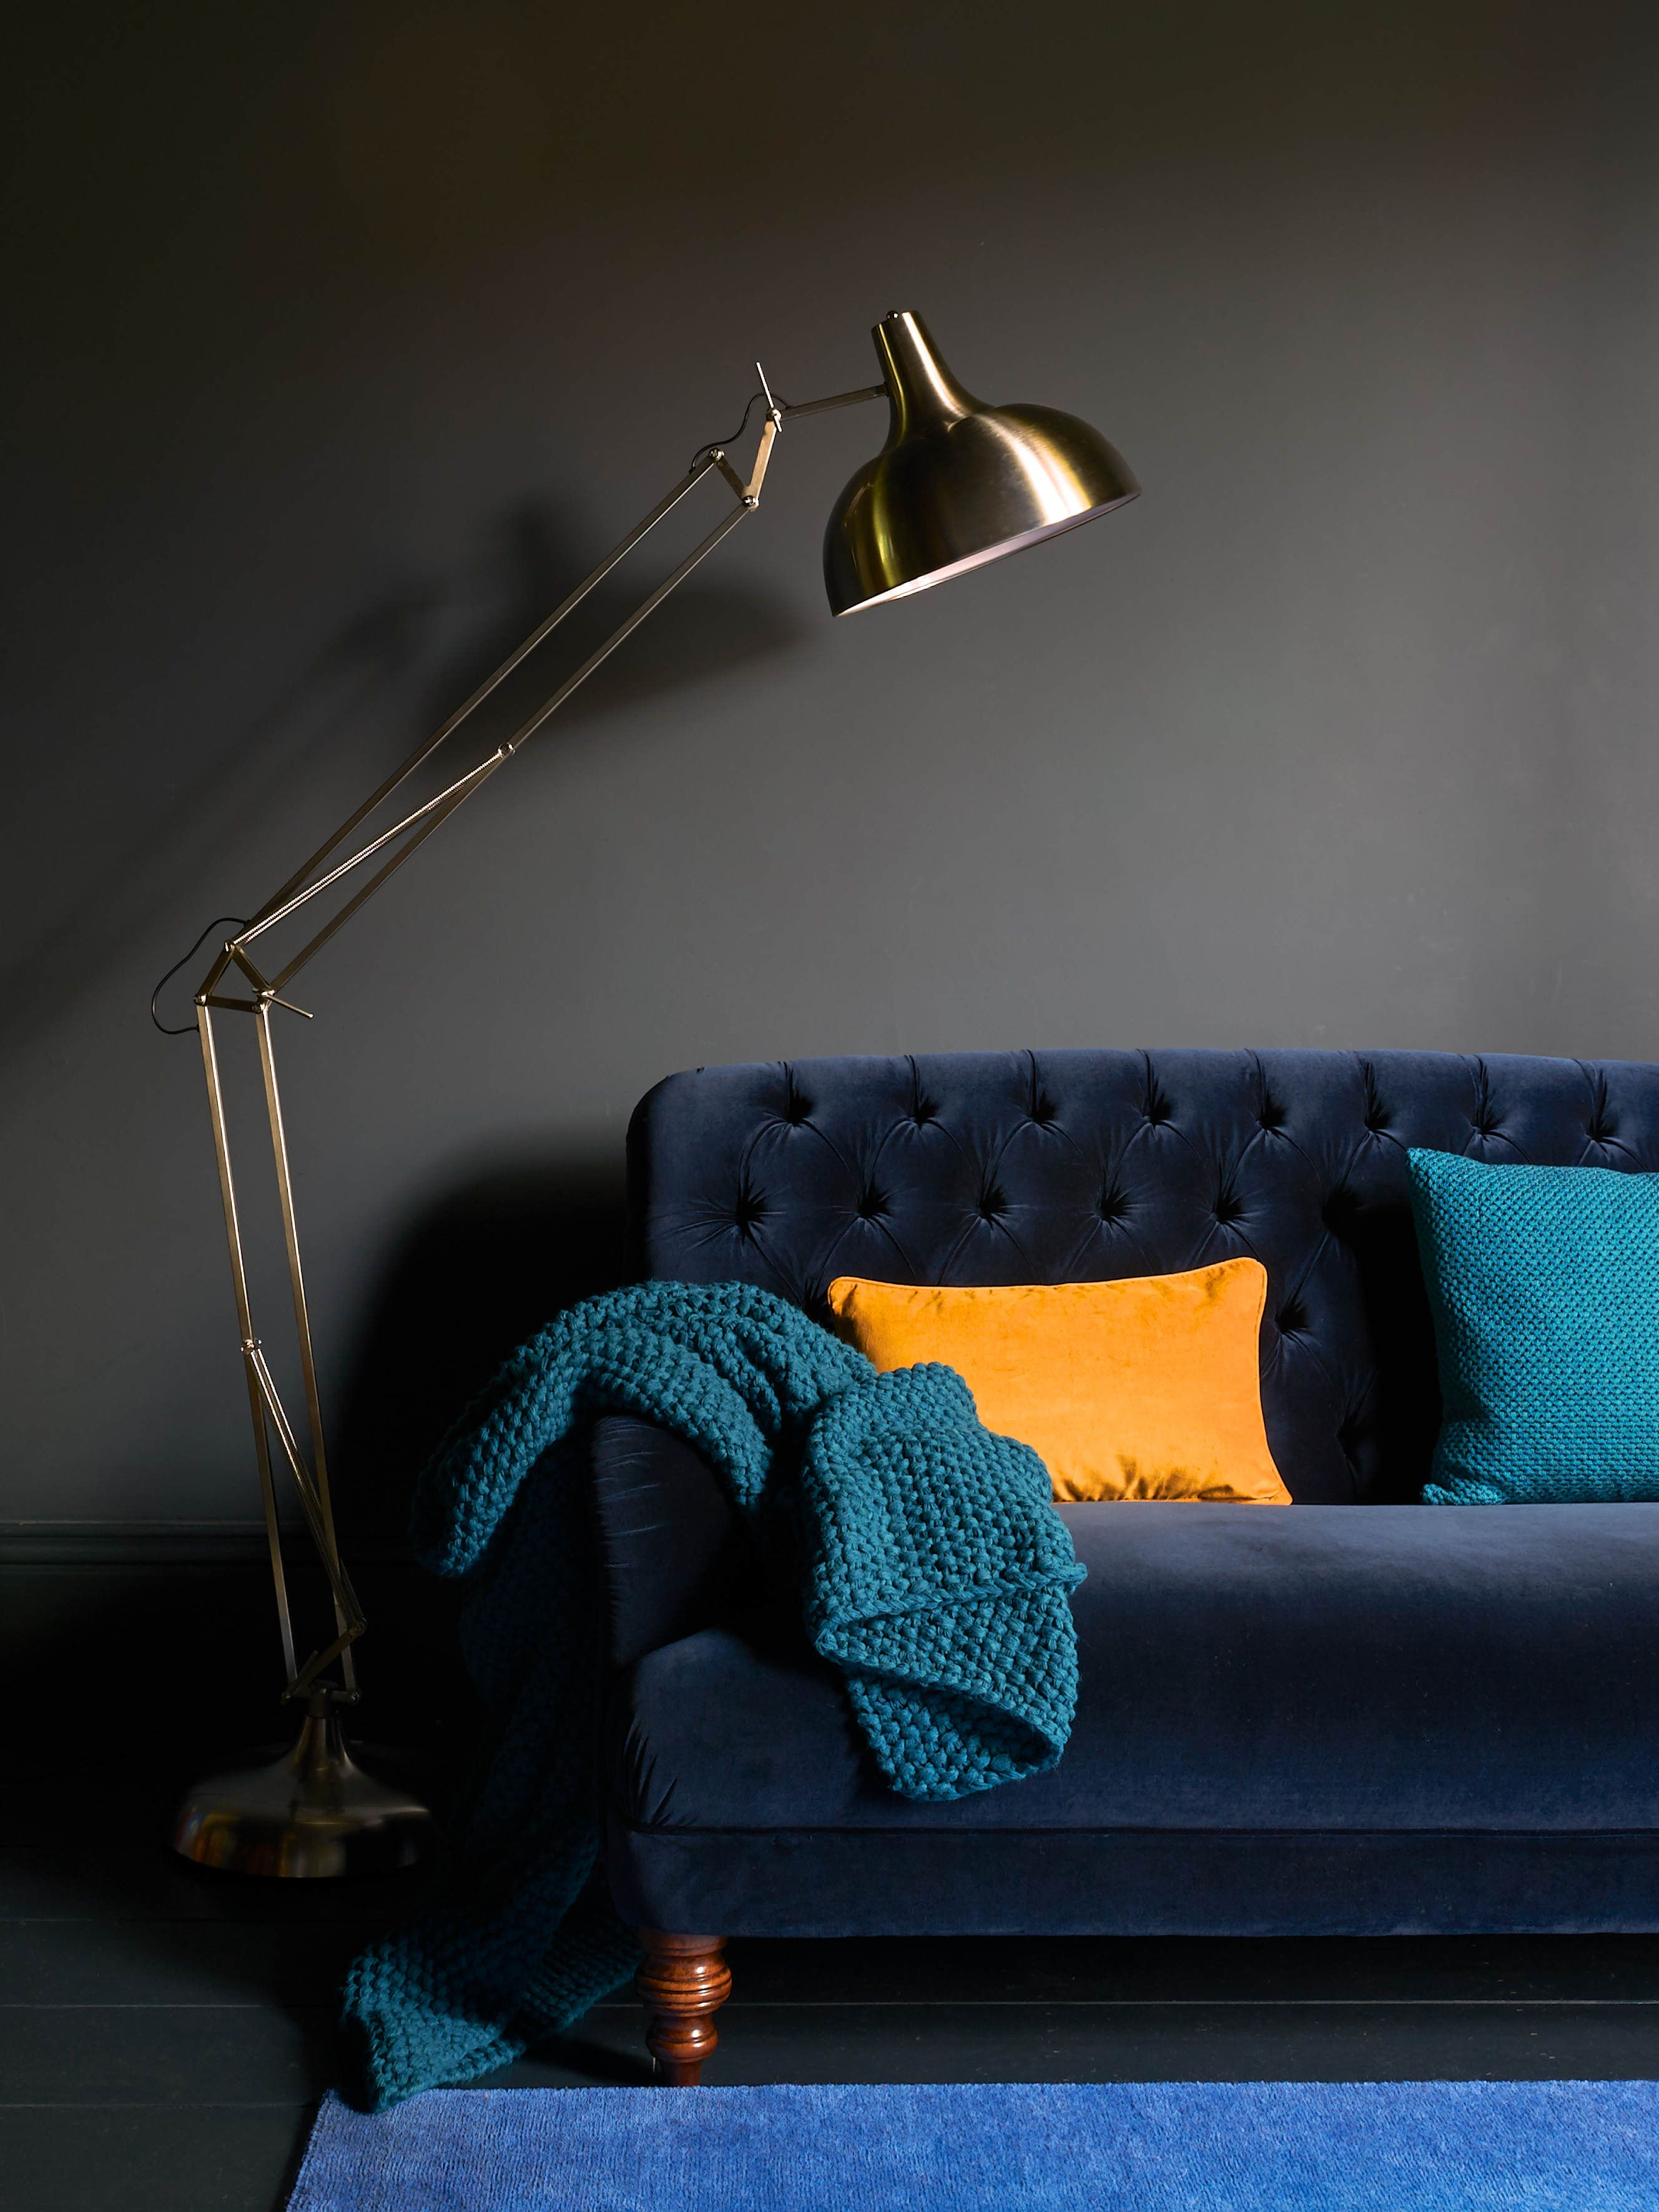 Bailey Sofa   Velvet Maxi Sofa By Sofa Workshop In Royal Blue, At DFS